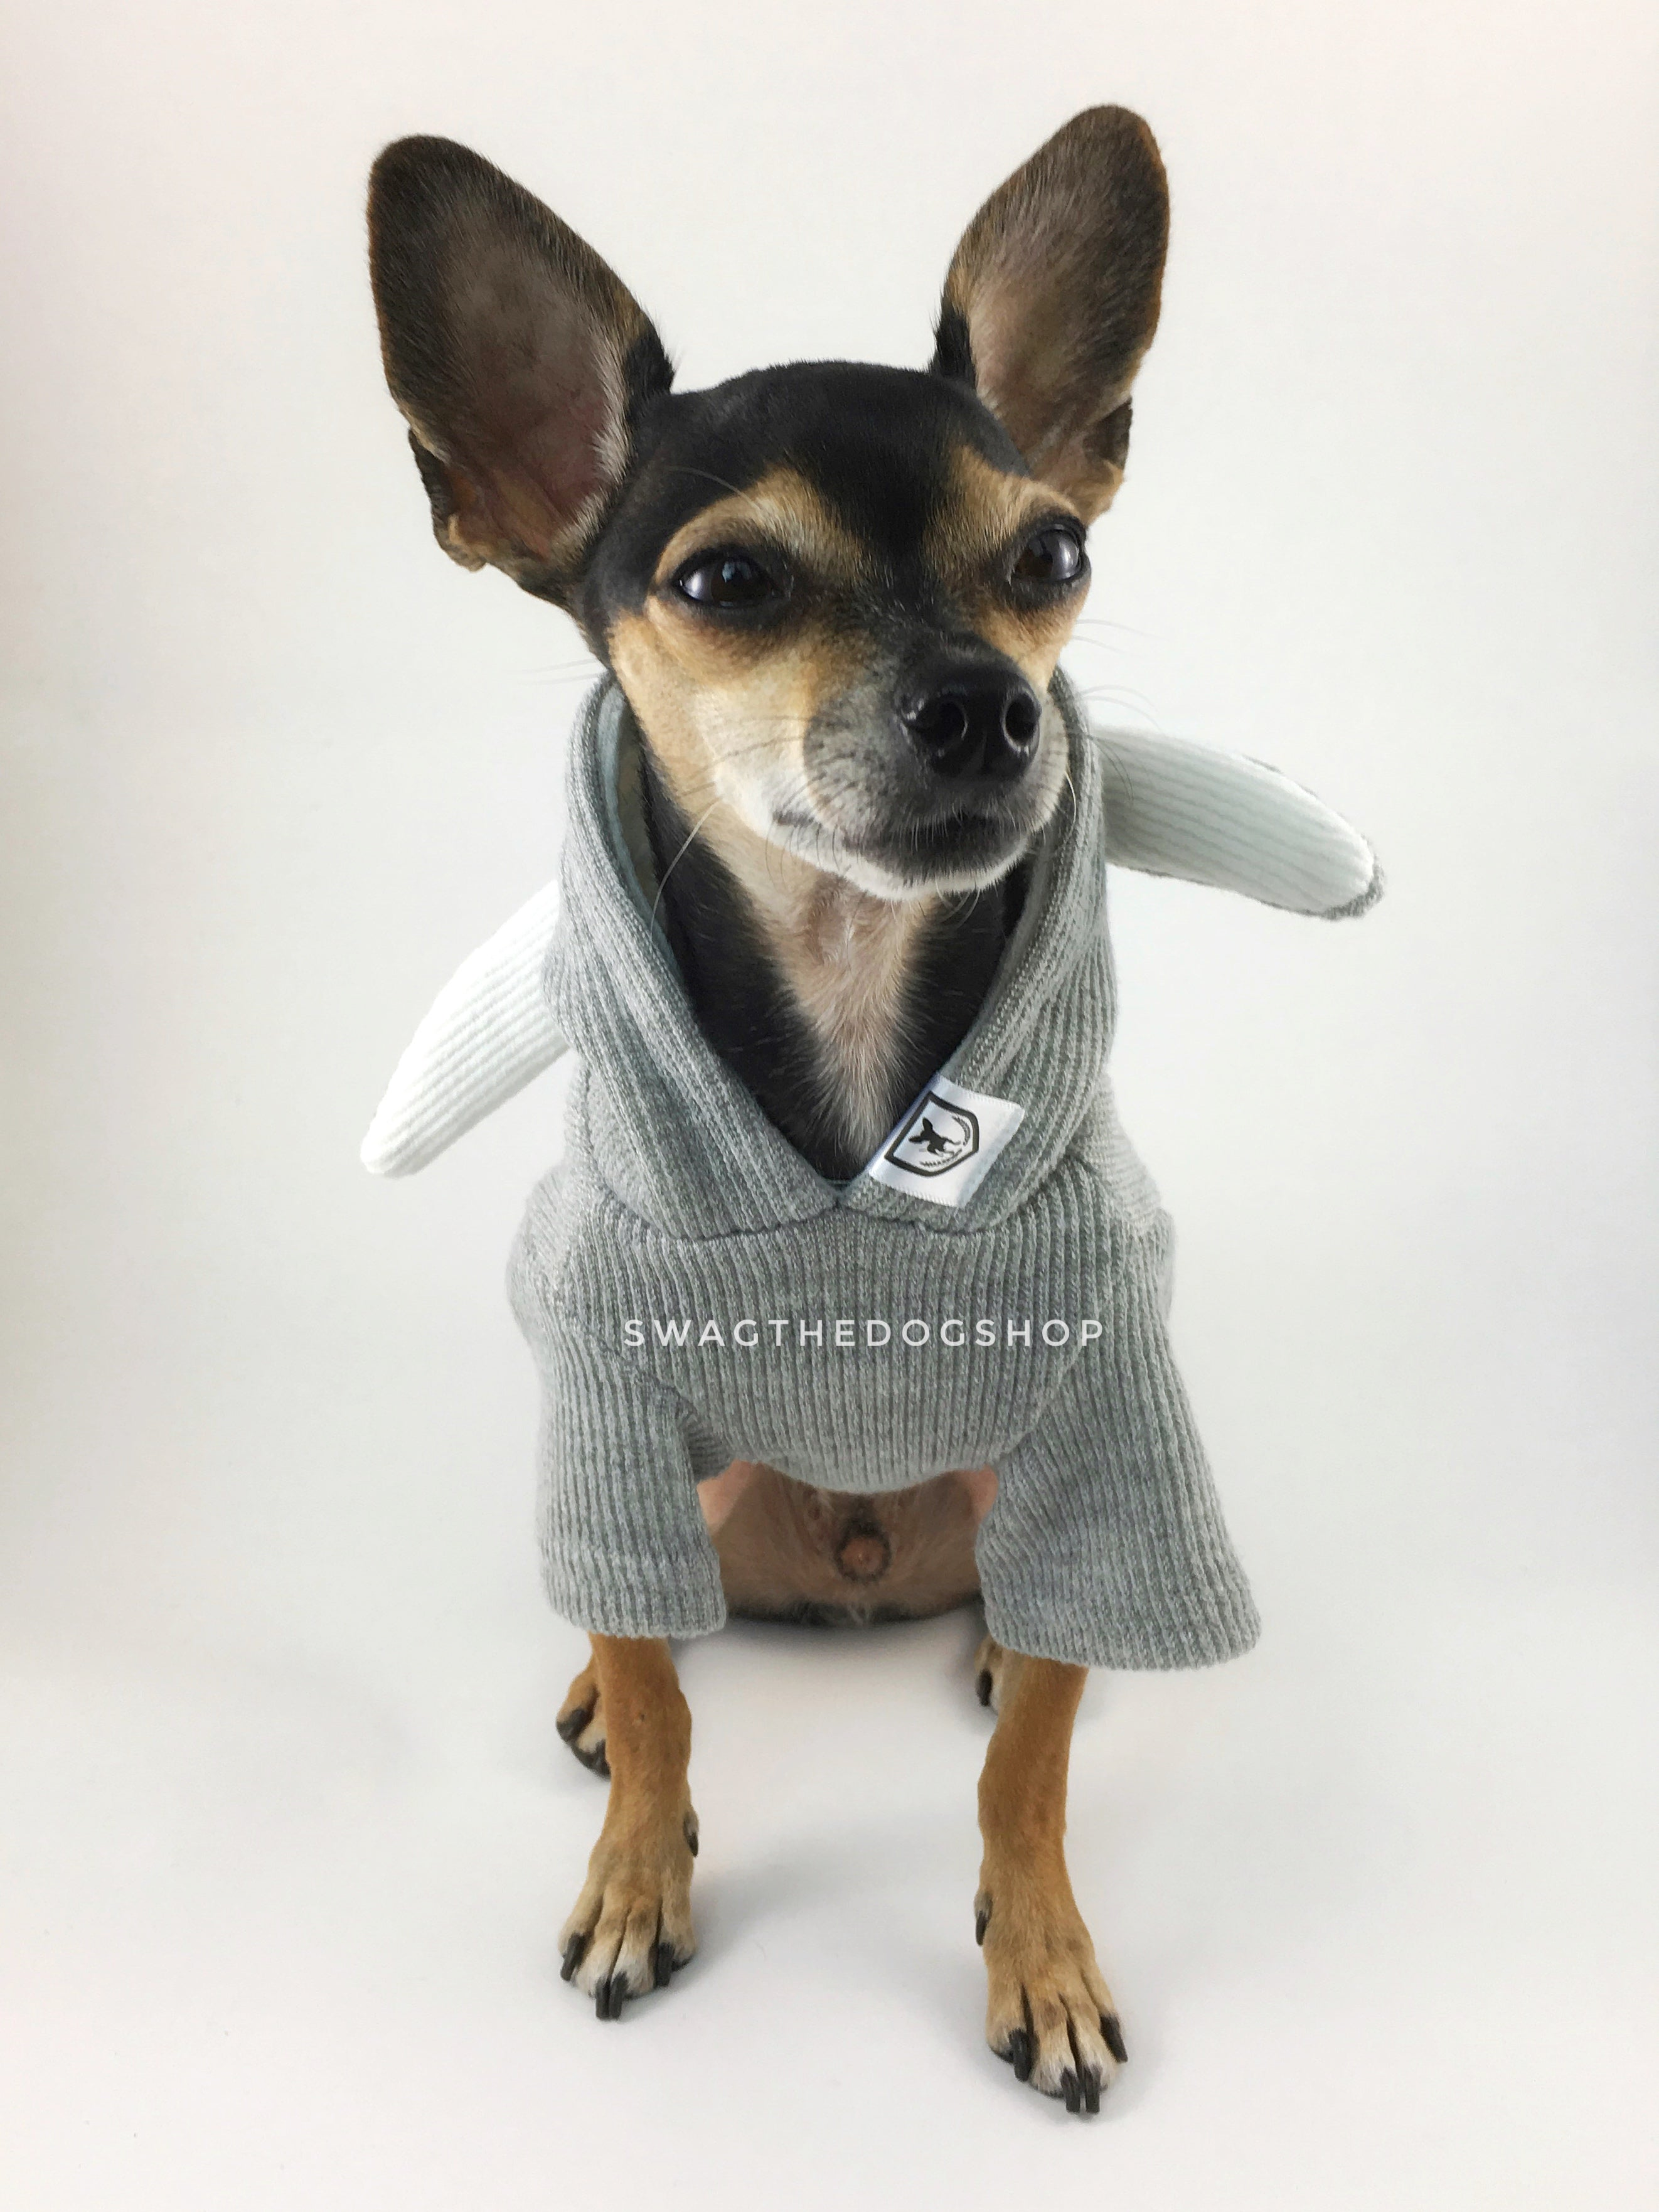 Gray Bunny Hoodie - Full Front View of Cute Chihuahua Dog Wearing Hoodie. Gray Bunny Hoodie with Pom Pom Tail